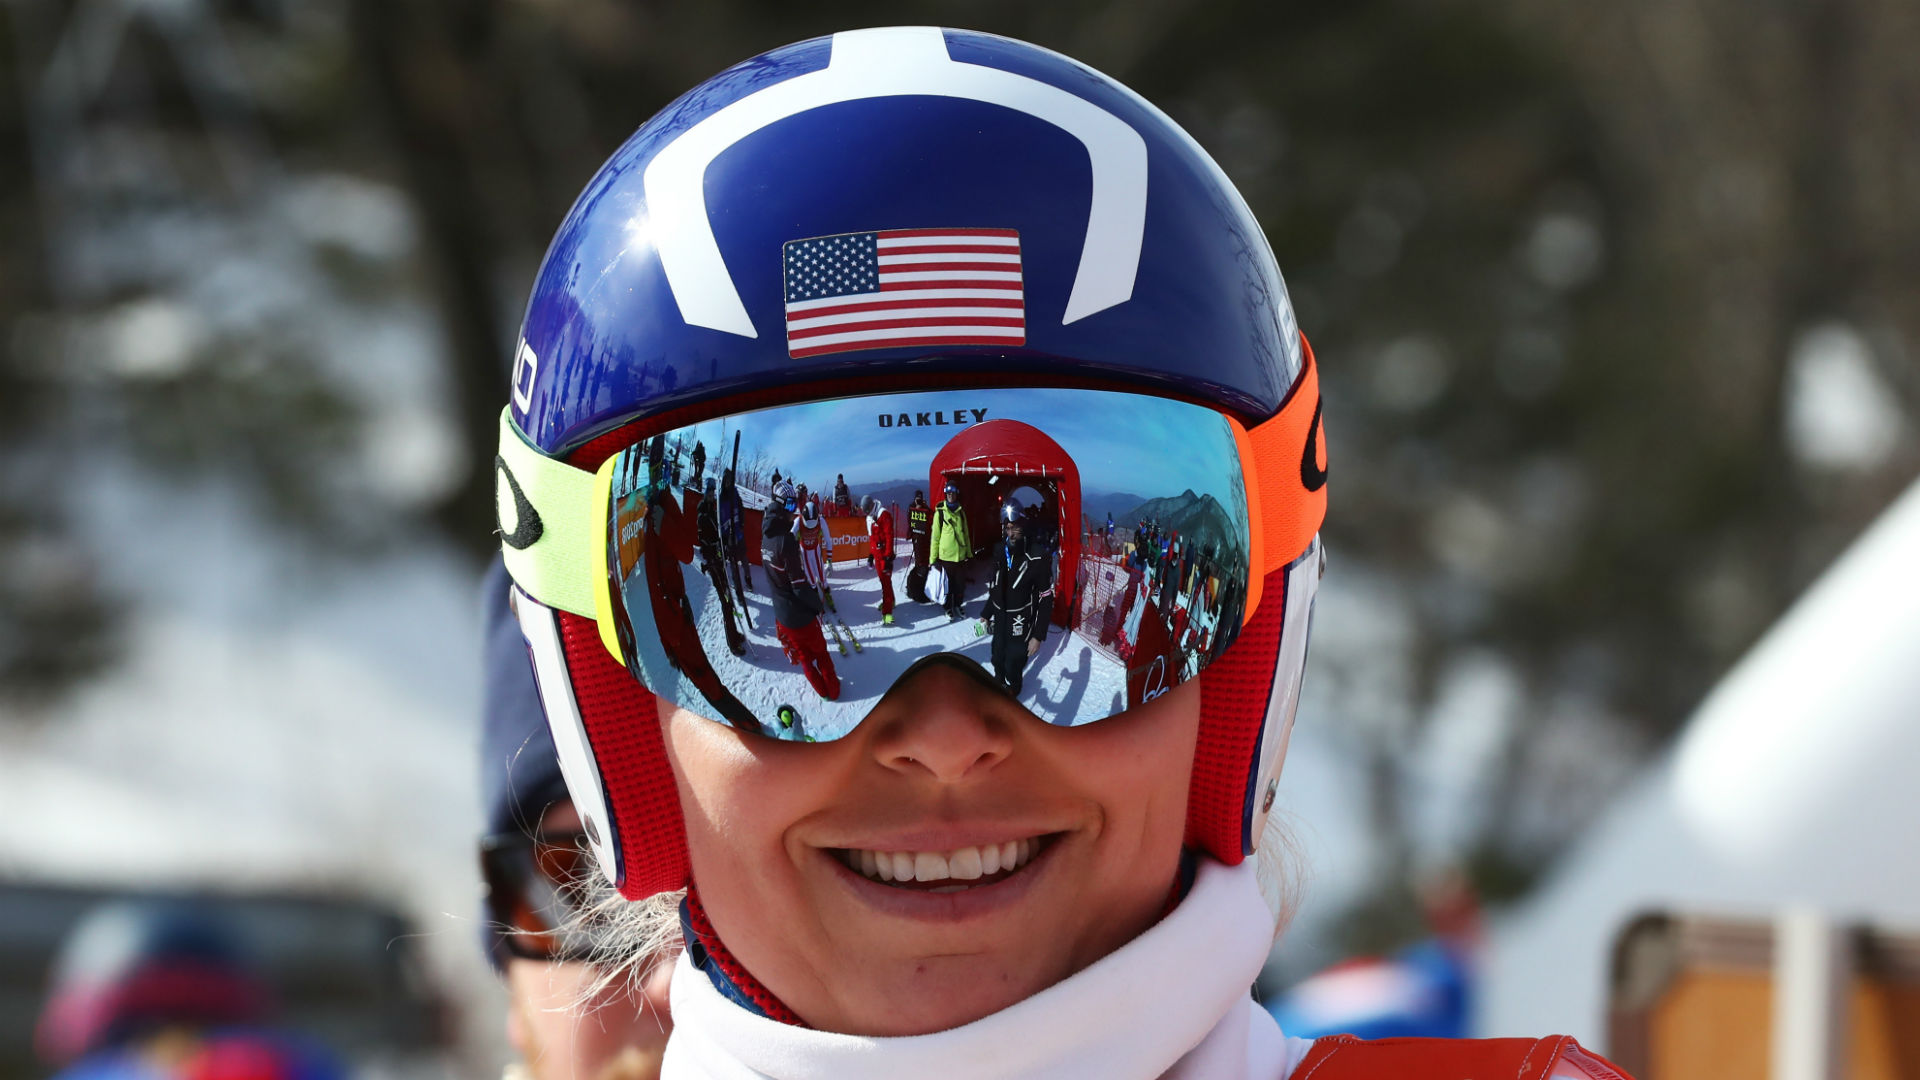 Vonn slips to miss podium in super-G